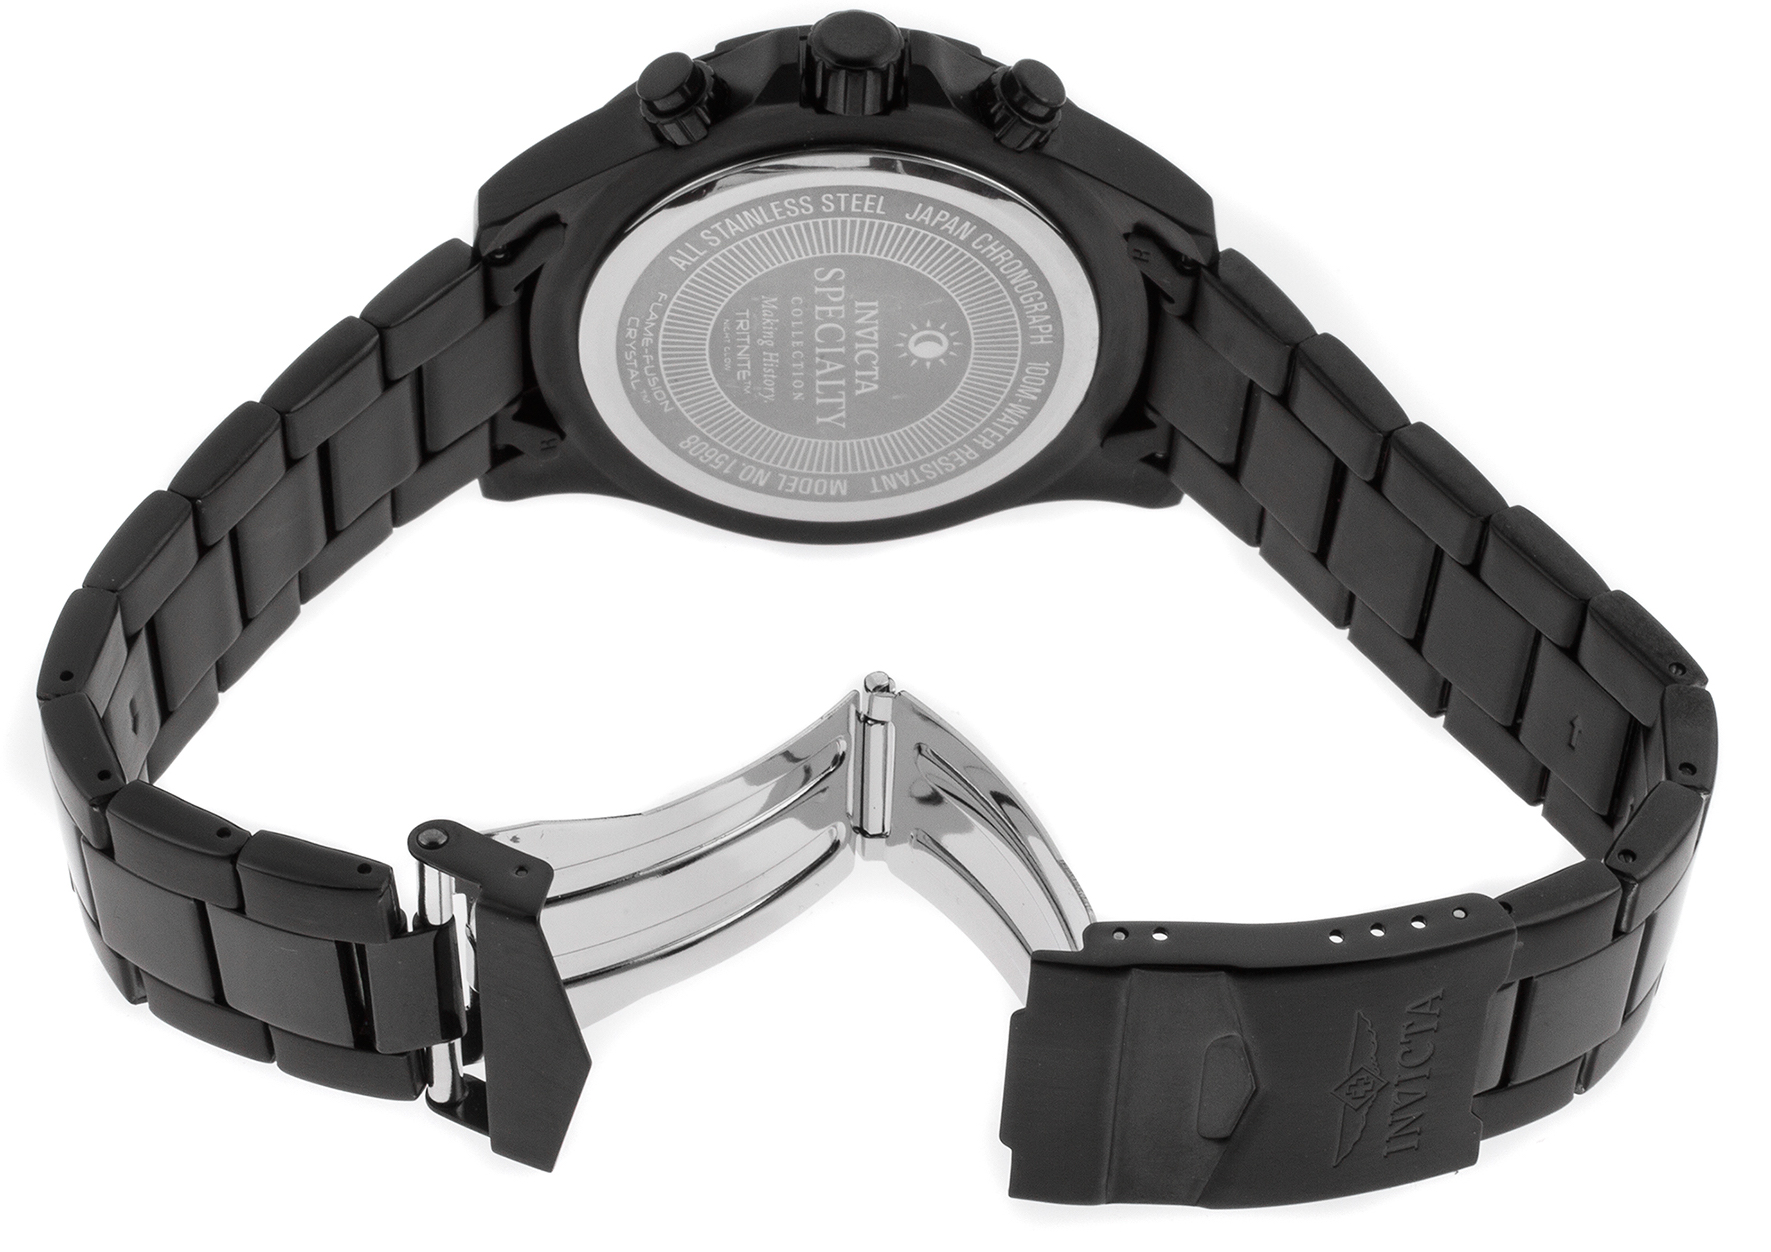 watch and clasp back photo